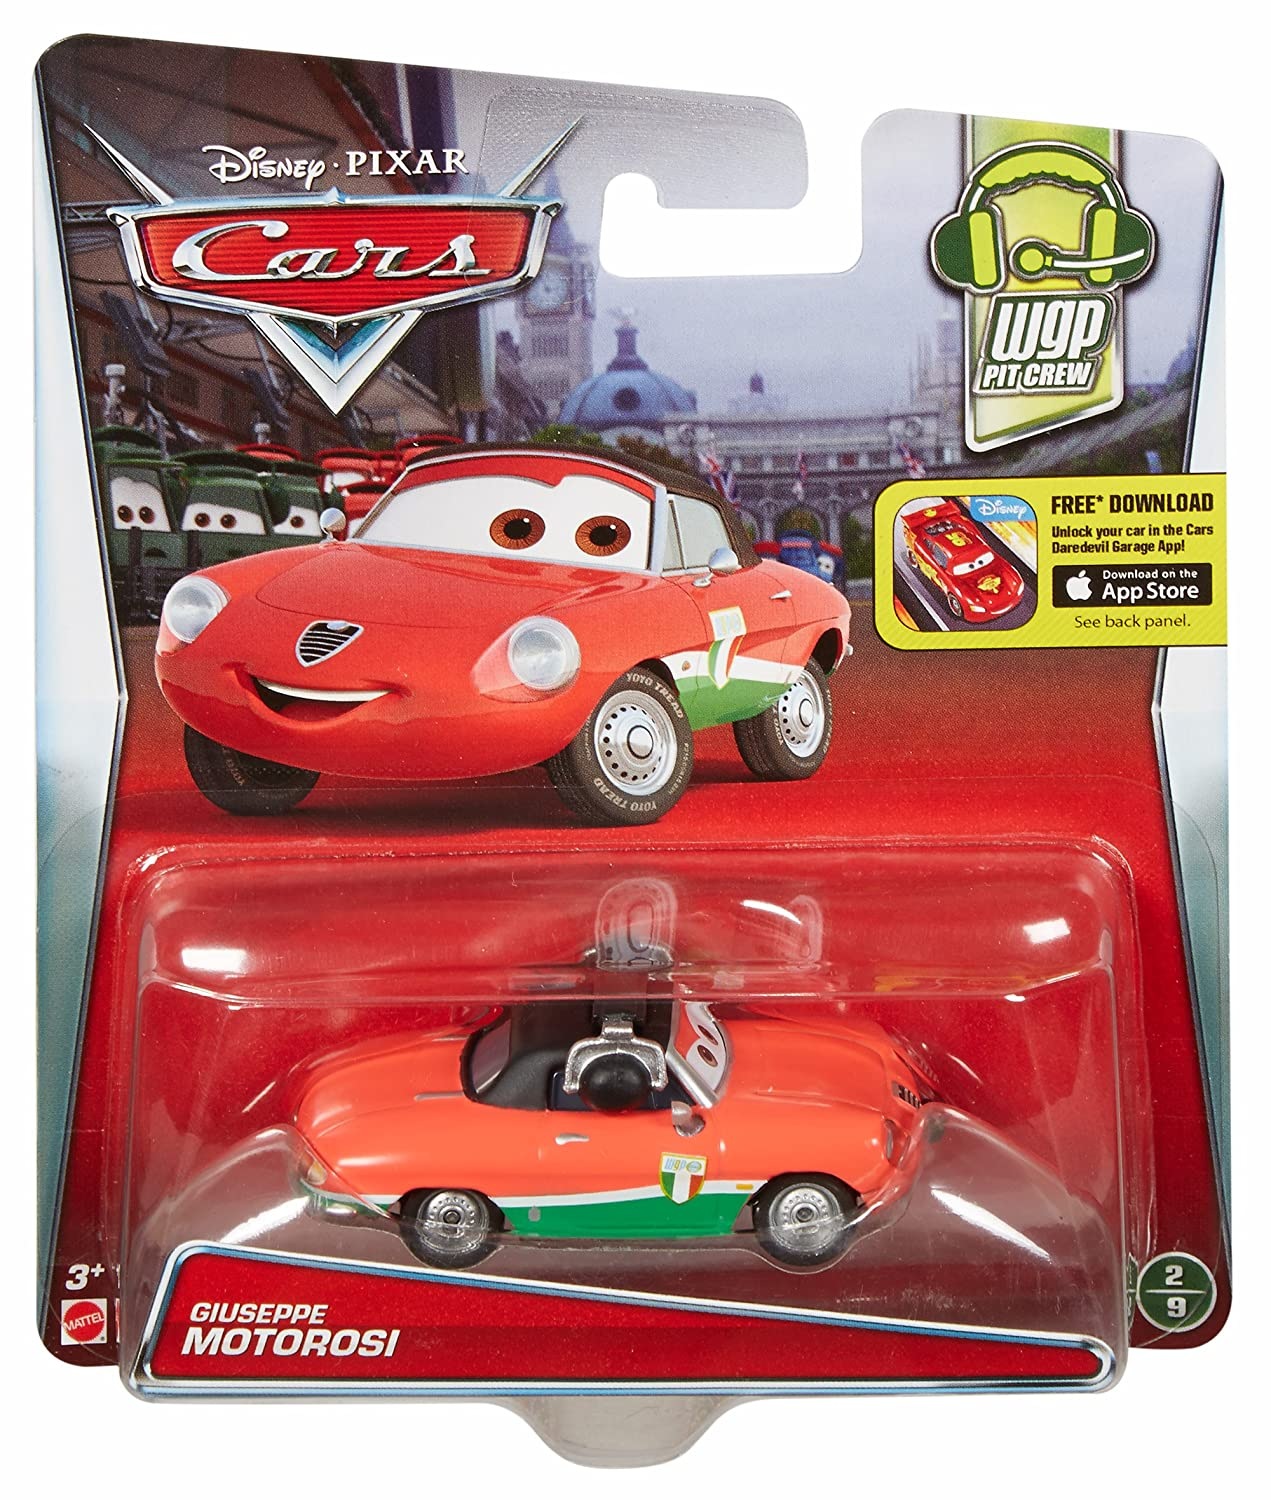 Disney/Pixar Cars Giuseppe Motorosi Vehicle by Mattel: Amazon.es: Juguetes y juegos